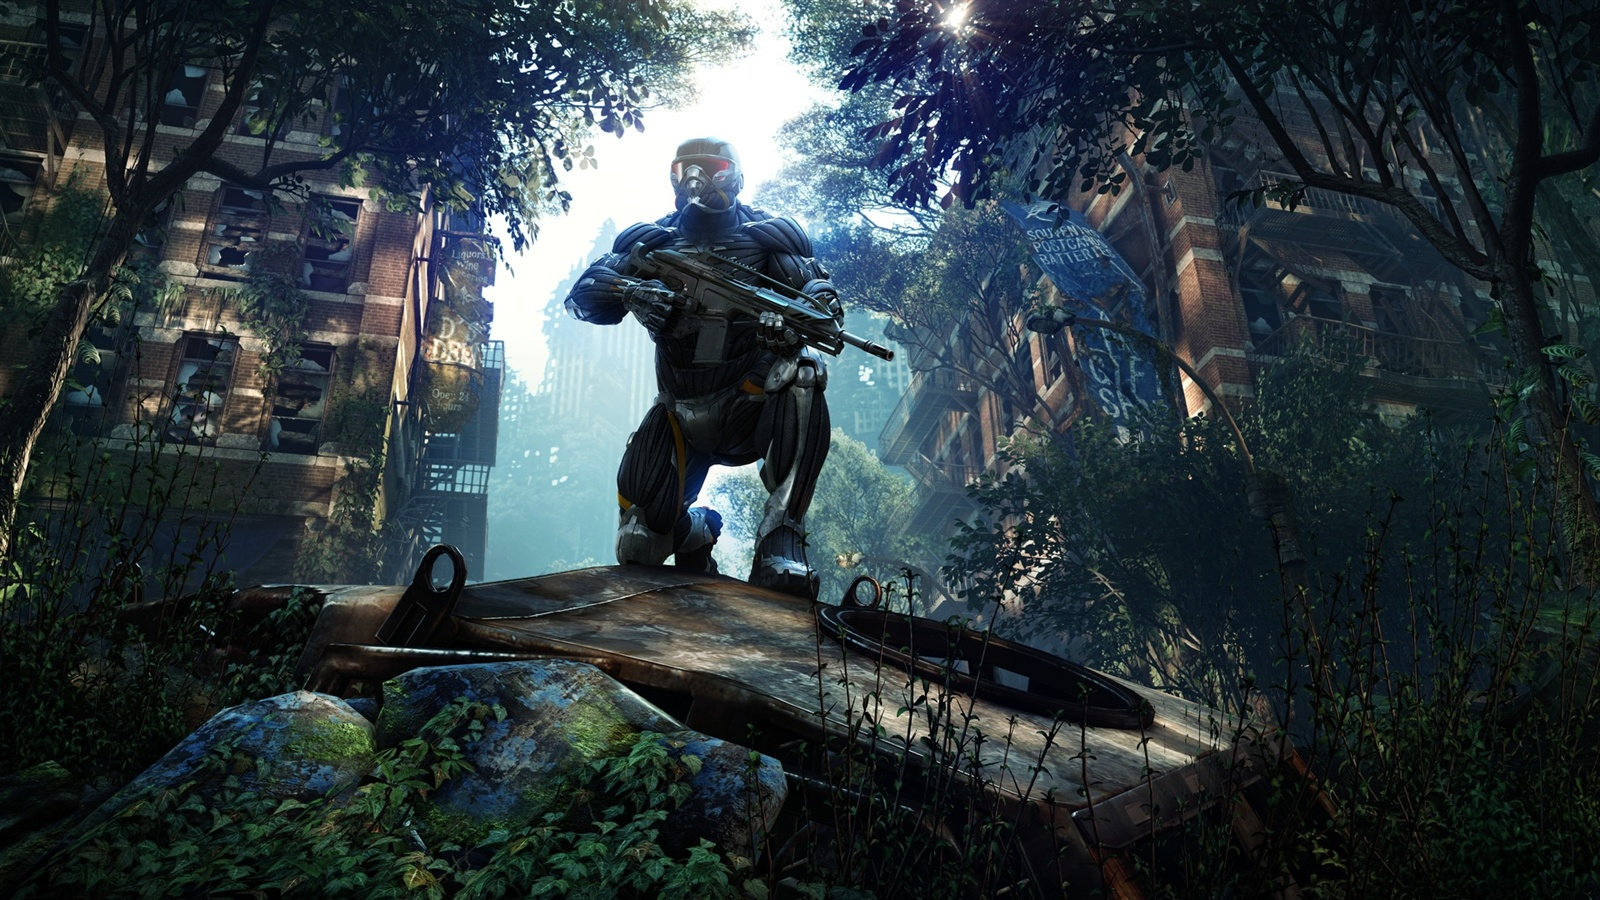 Wallpaper Crysis 3 Hd 1920x1080 Full Hd 2k Picture Image